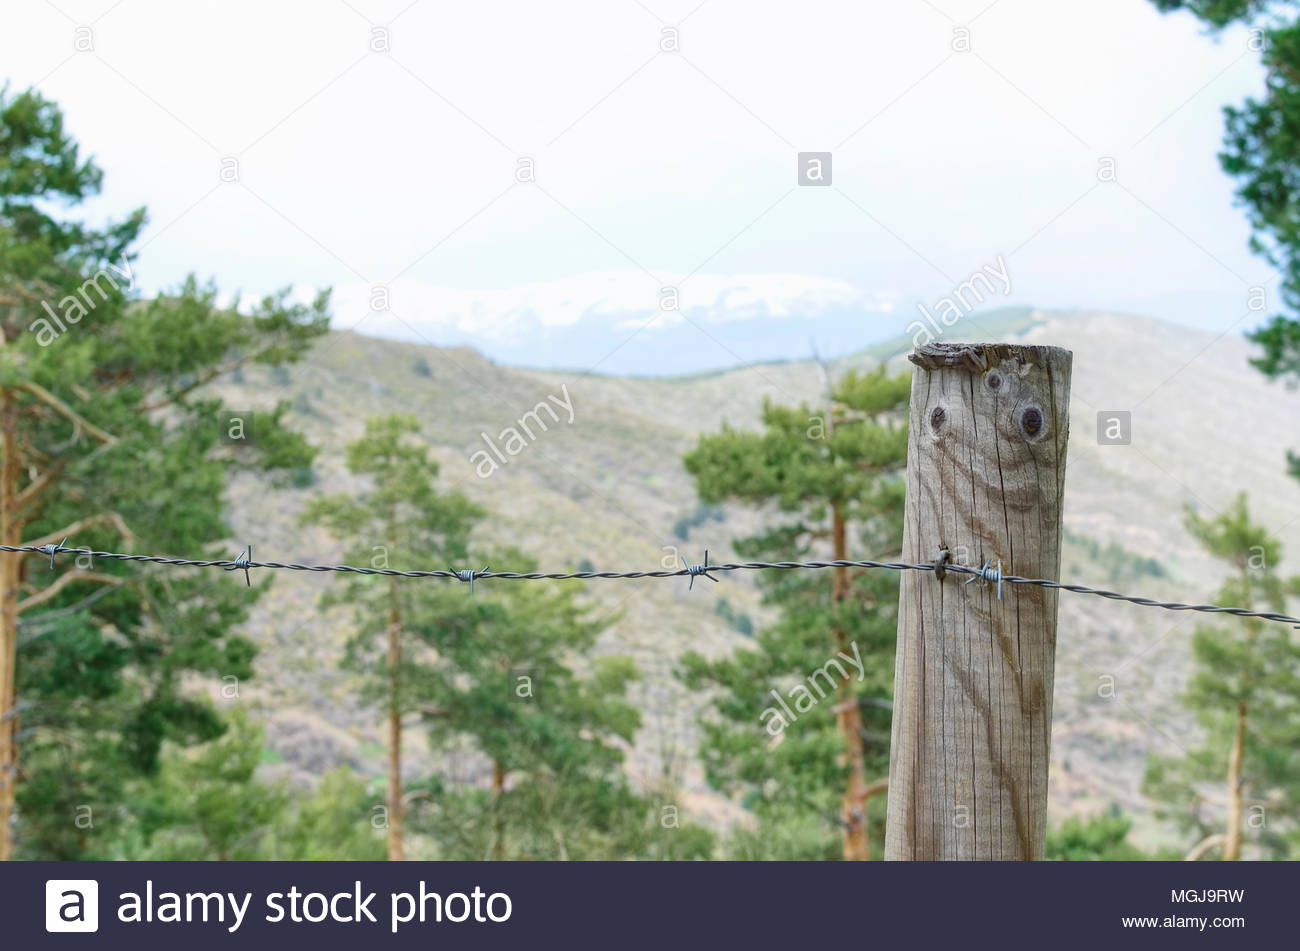 Weather In Guadarrama Mountain Range Madrid Spain Forefront Of Barbed Wire Mountain Fence Wintry Day In Spring Season